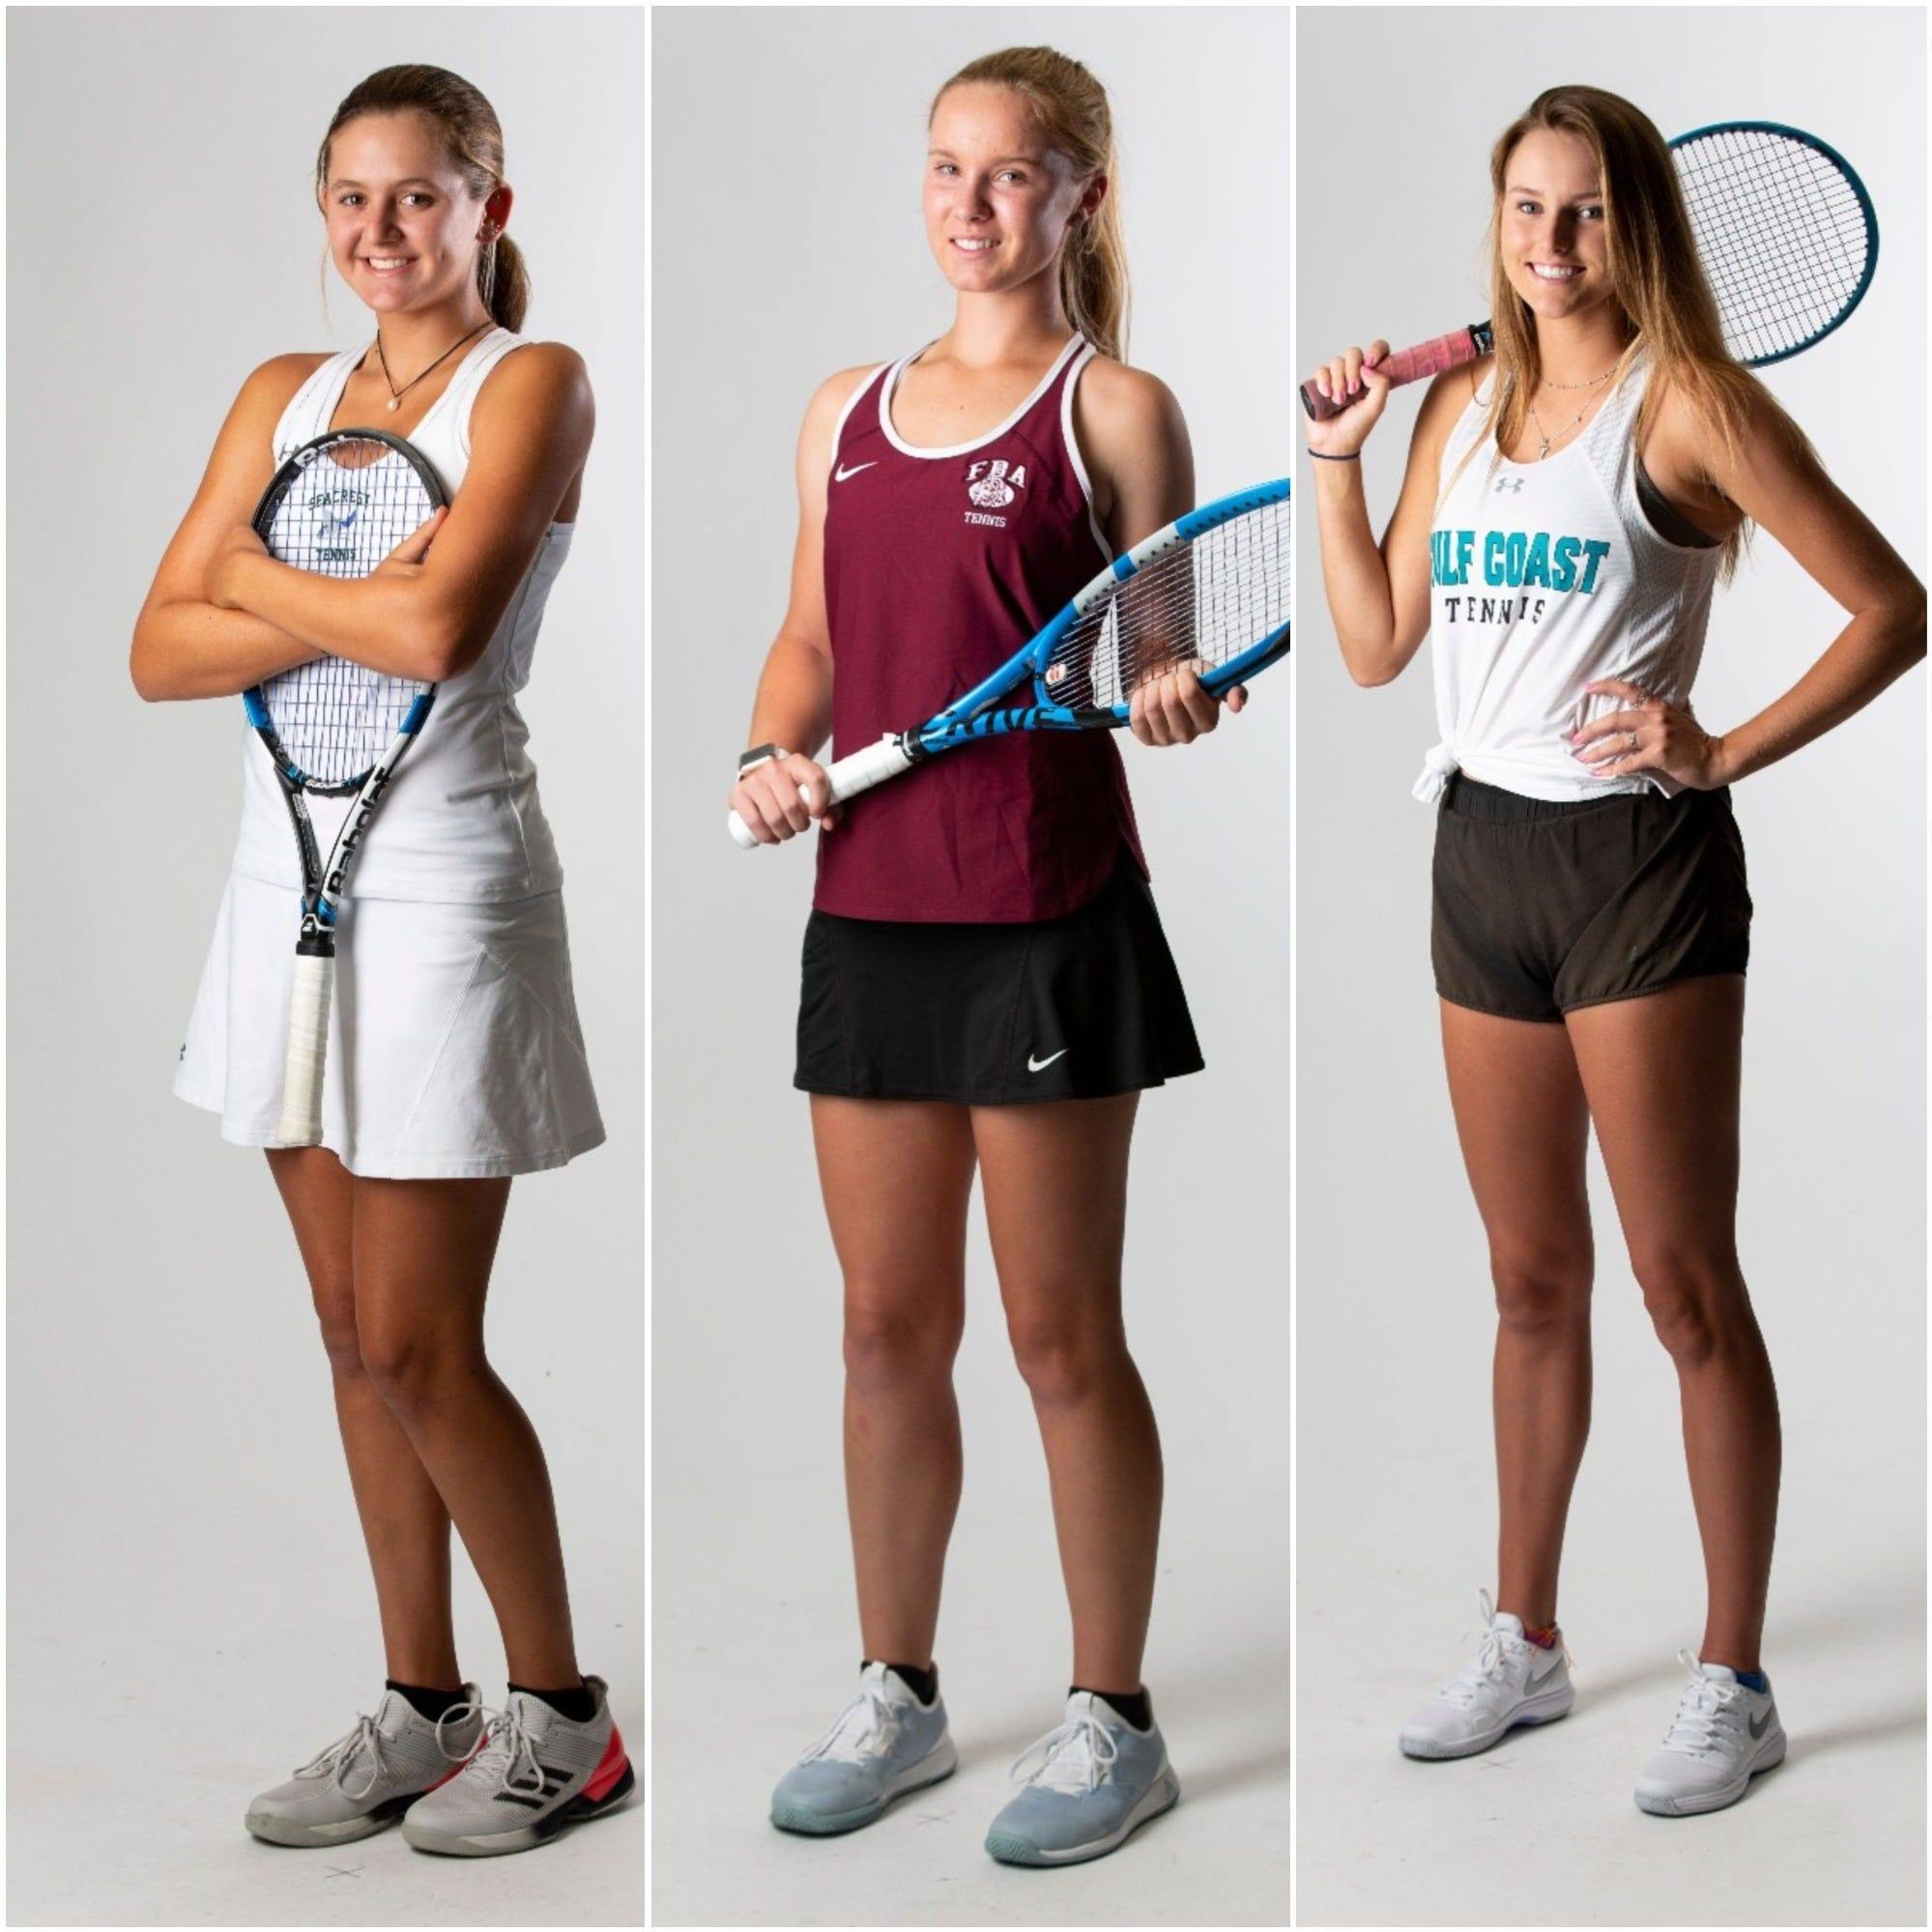 Naples Daily News 2019 All-Area Girls Tennis Team